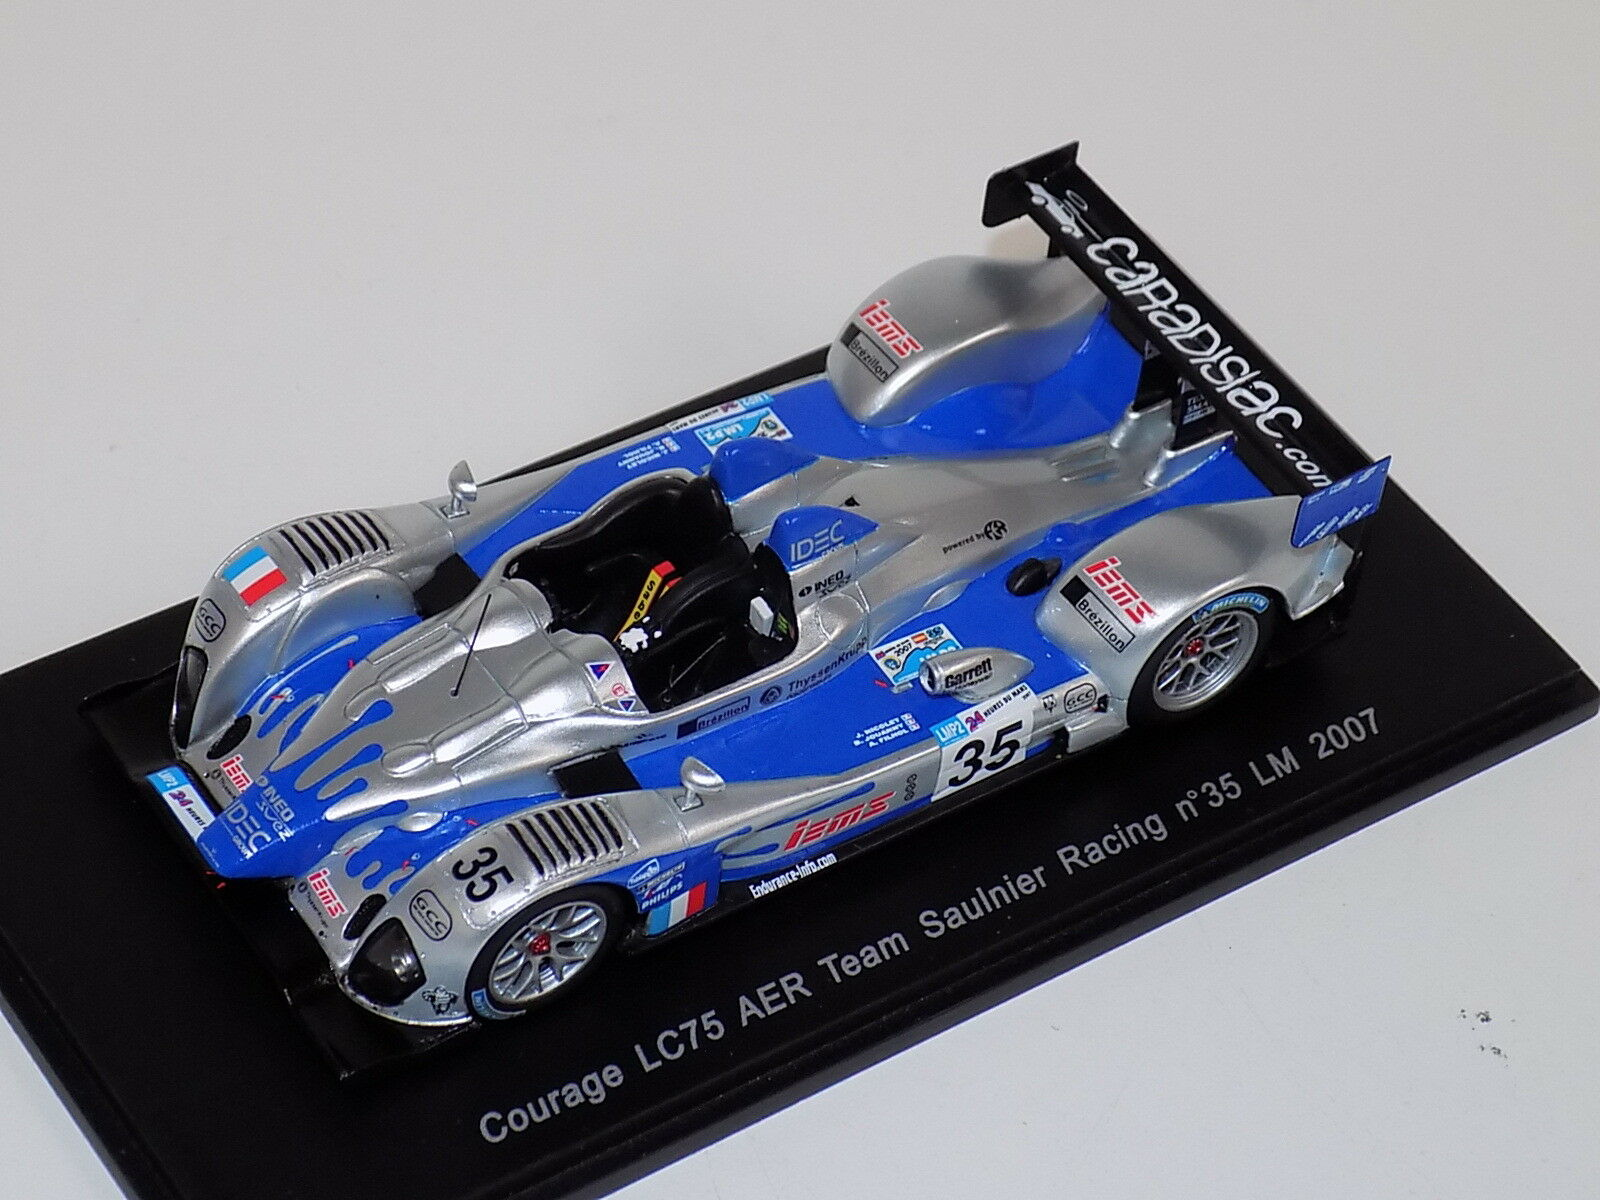 1/43 Spark Courage LC25 AER   Car  35  24 Hours of LeMans  2007  S1424